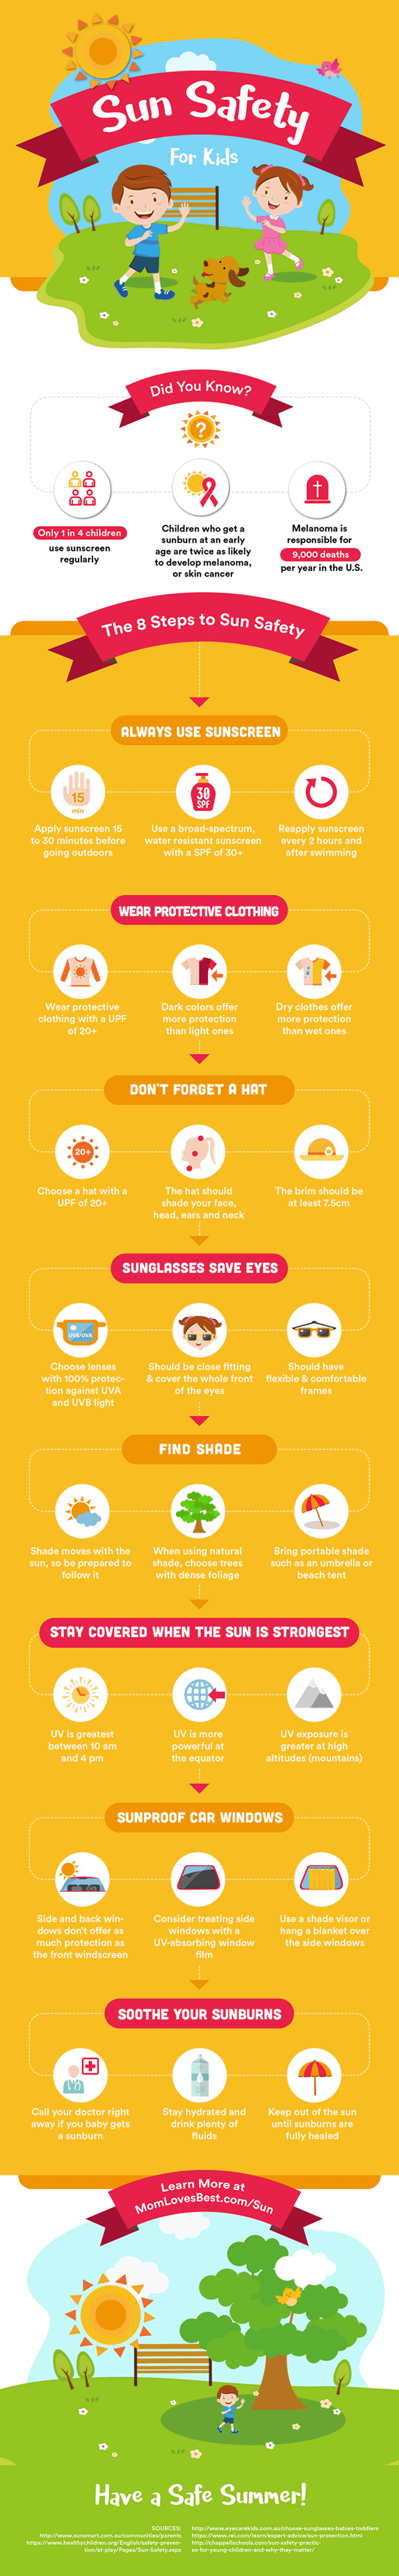 Sun Safety For Kids [infographic]